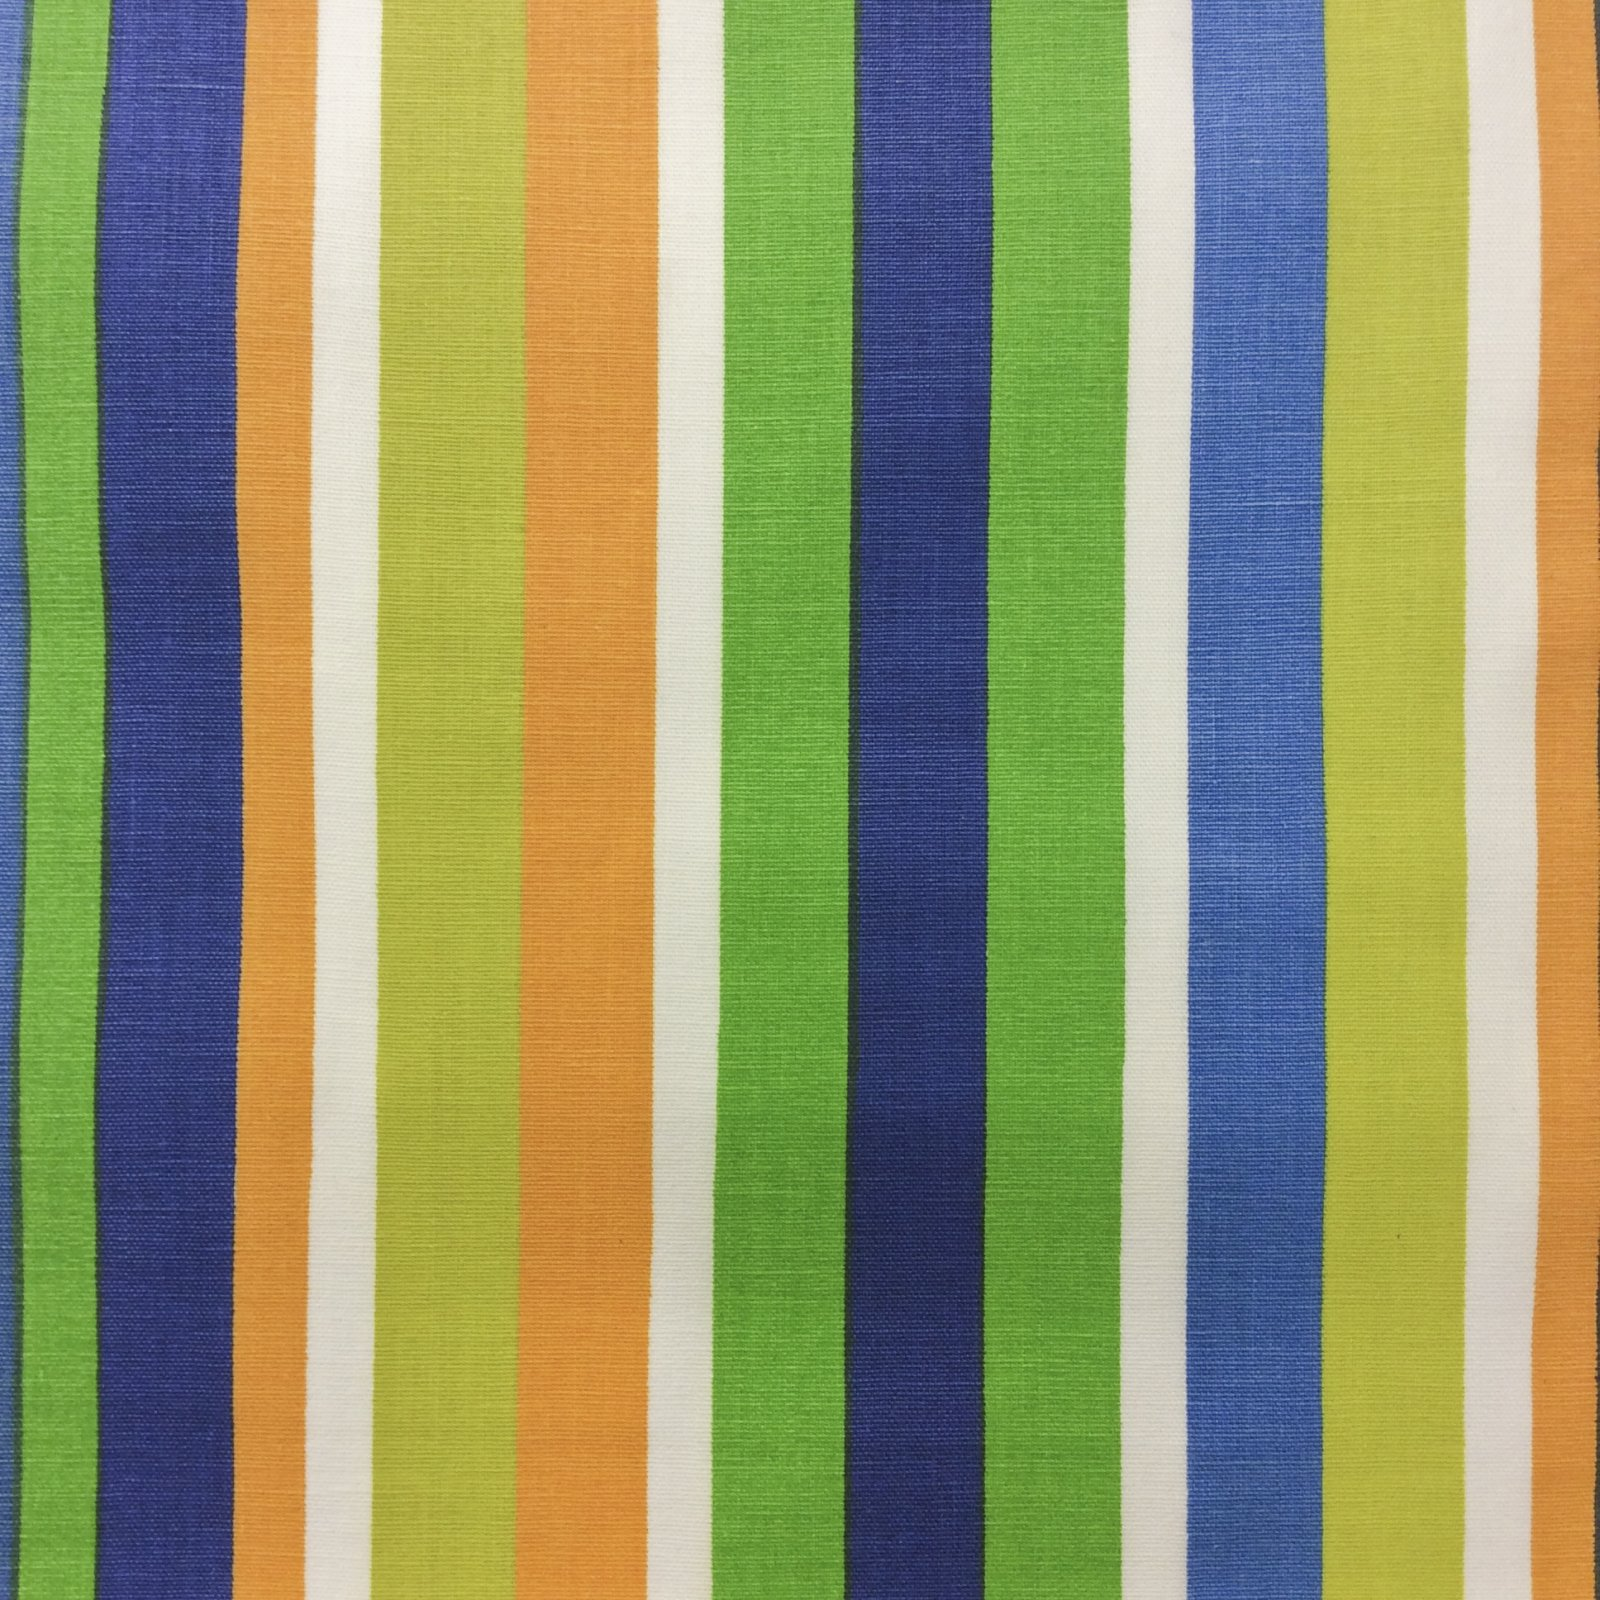 AA10 TRUE VINTAGE Stripes Orange Green Canvas Home Dec Cotton Fabric Charles